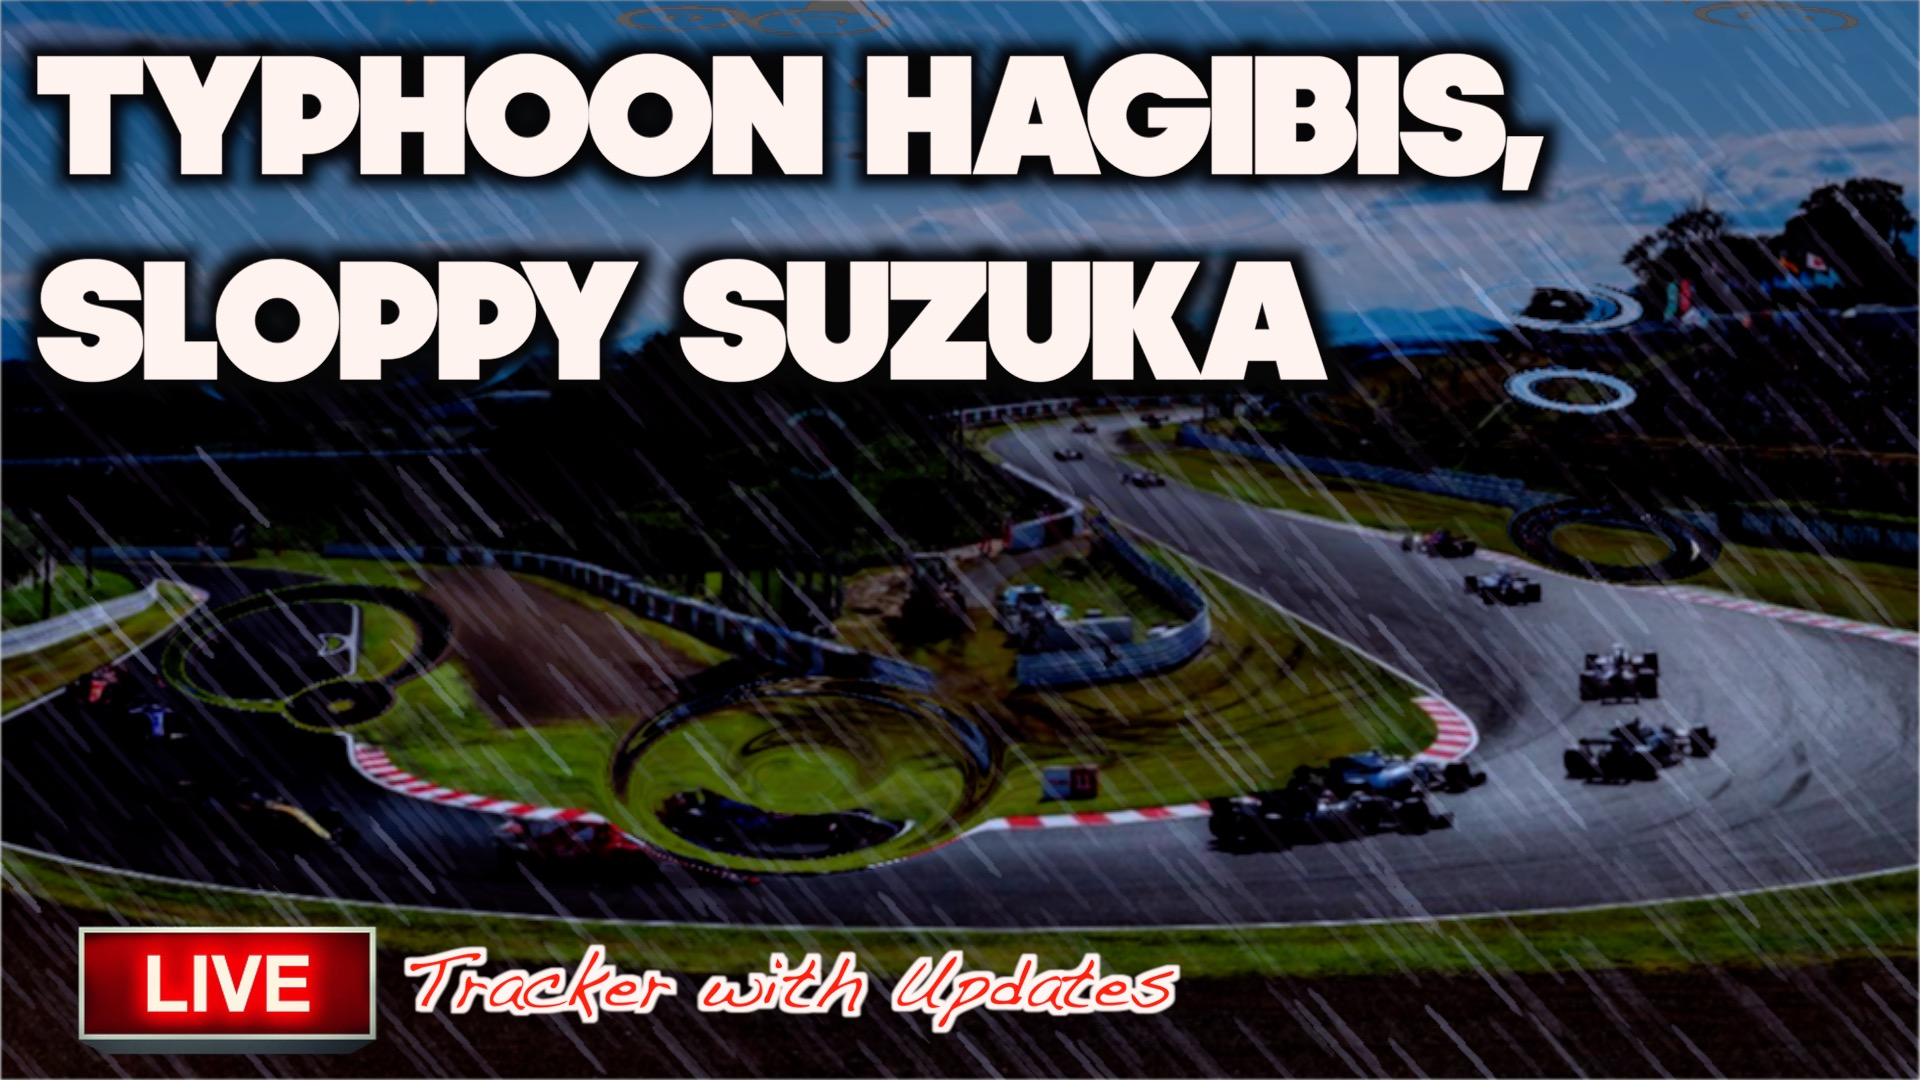 Typhoon Hagibis Set To Hit The Japanese Grand Prix: F1 News Videos